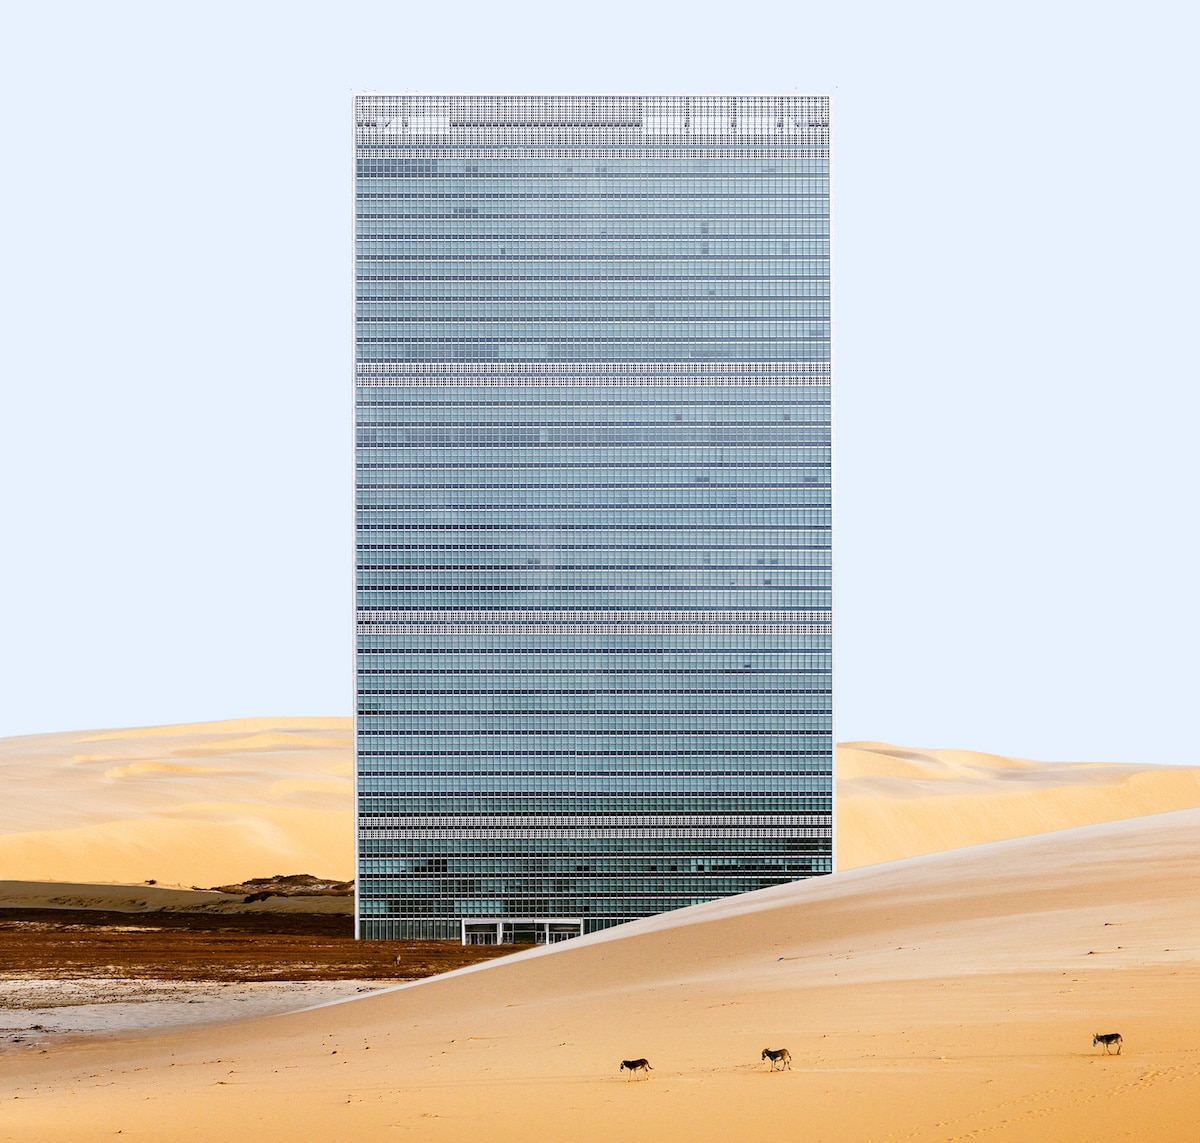 NYC Famous Landscapes Misplaced Digital Collage Series by Anton Repponen